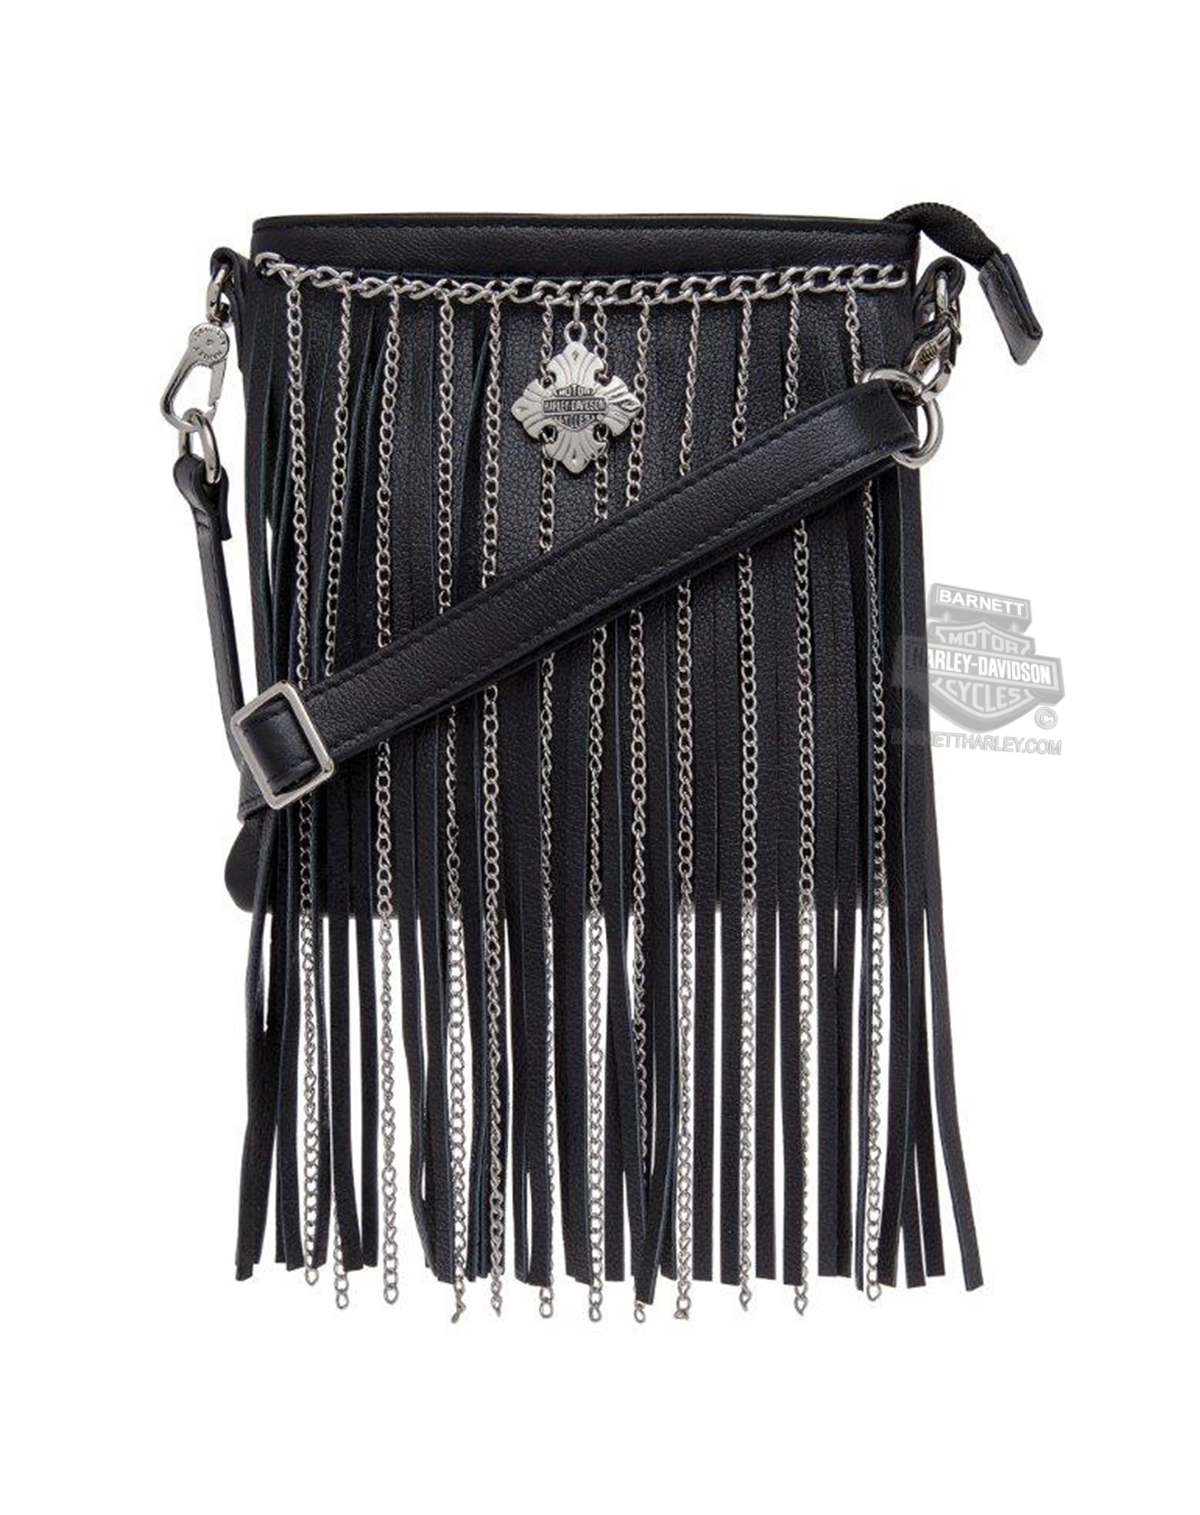 Harley-Davidson® Womens Off the Chain Fringe Detail Crossbody Black Leather Purse by LODIS *48HR*